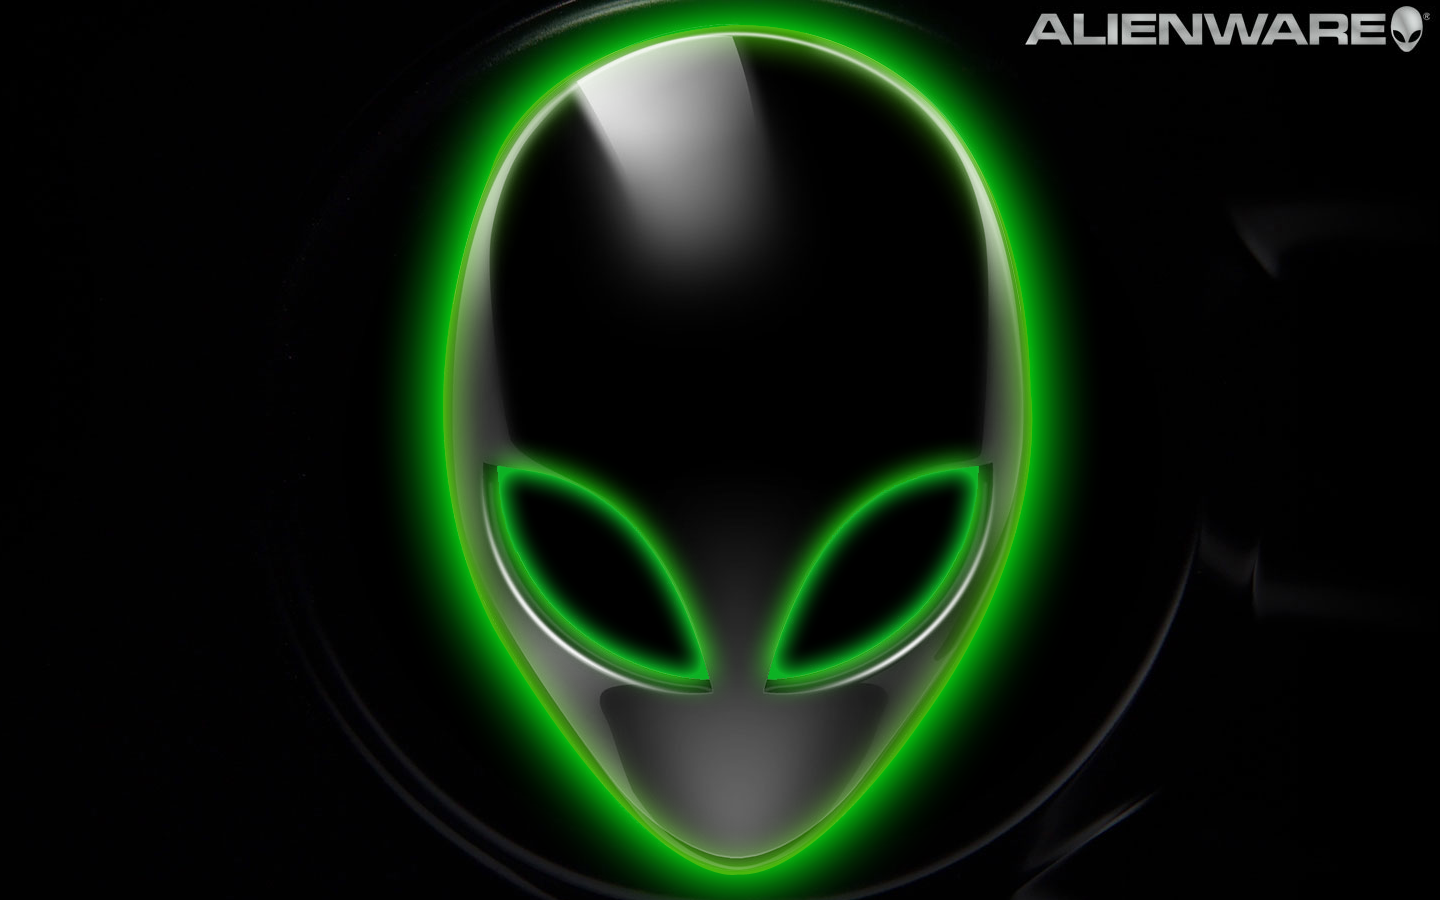 alienware wallpaper green hd - photo #16